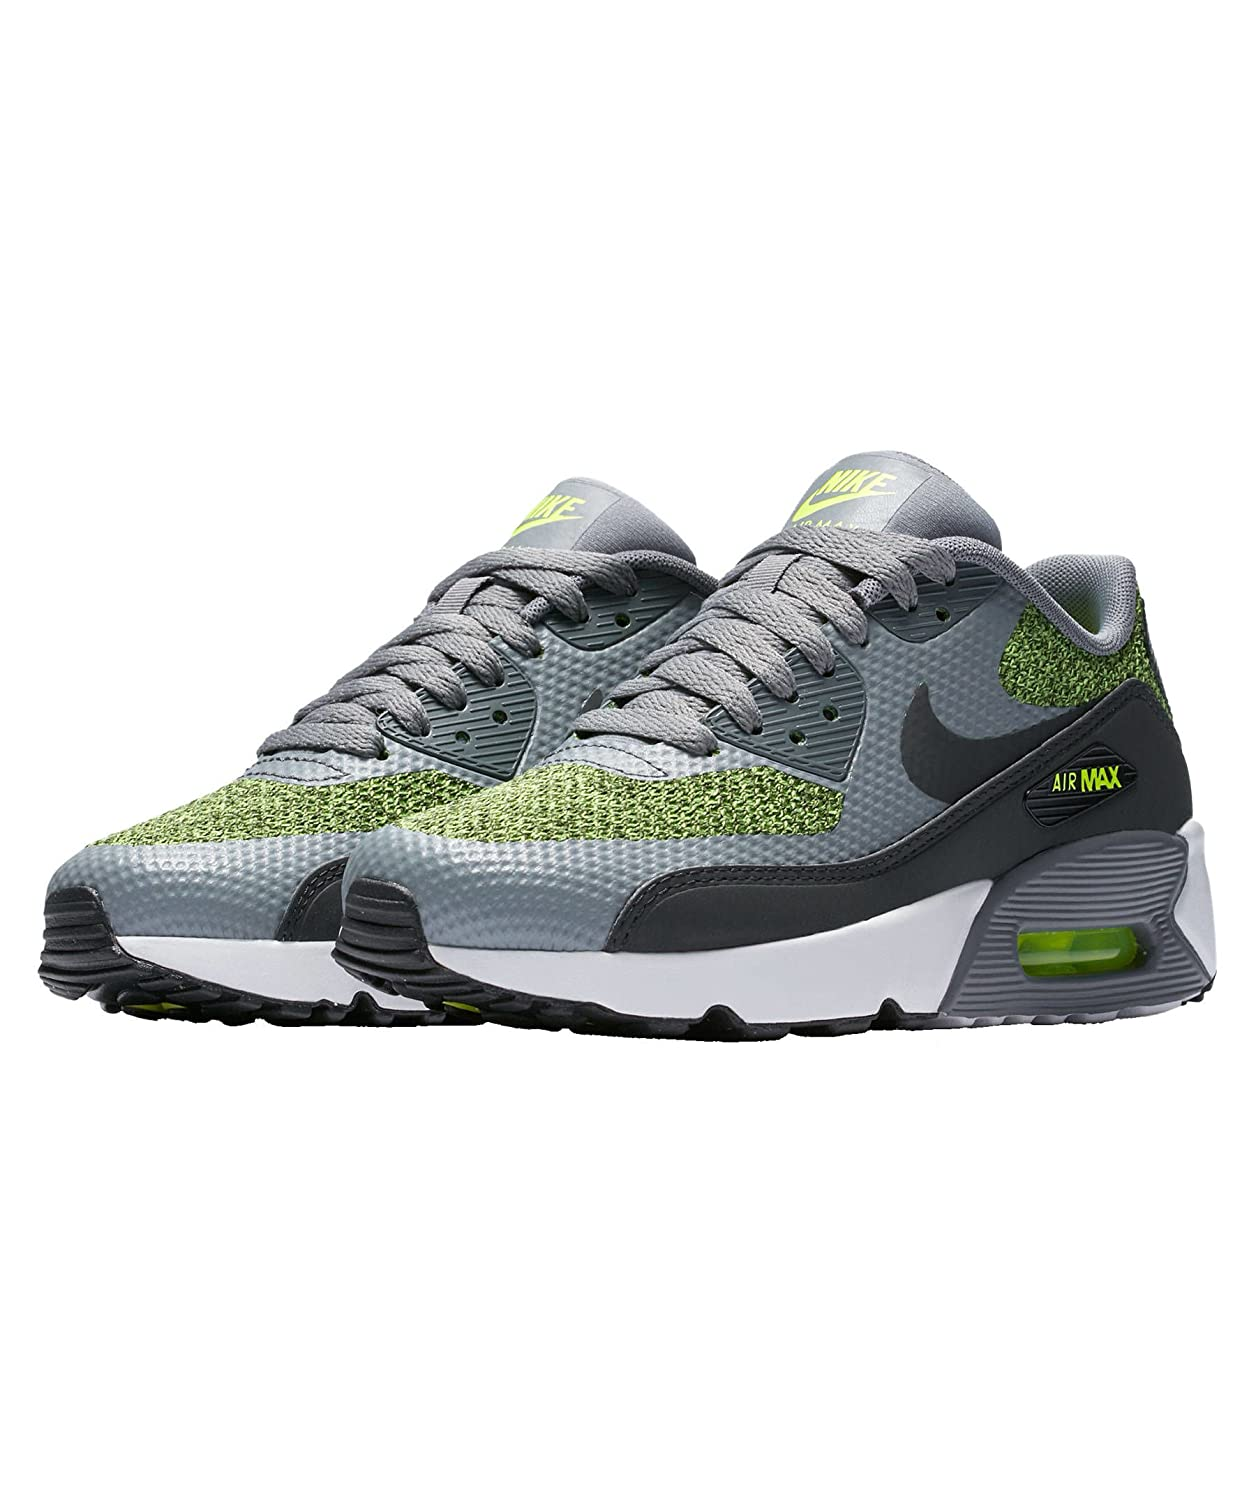 competitive price d1361 df1bc Amazon.com   Nike Air Max 90 Ultra 2.0 SE Cool Grey Anthracite-Volt (Big Kid)  (4 M US Big Kid)   Basketball